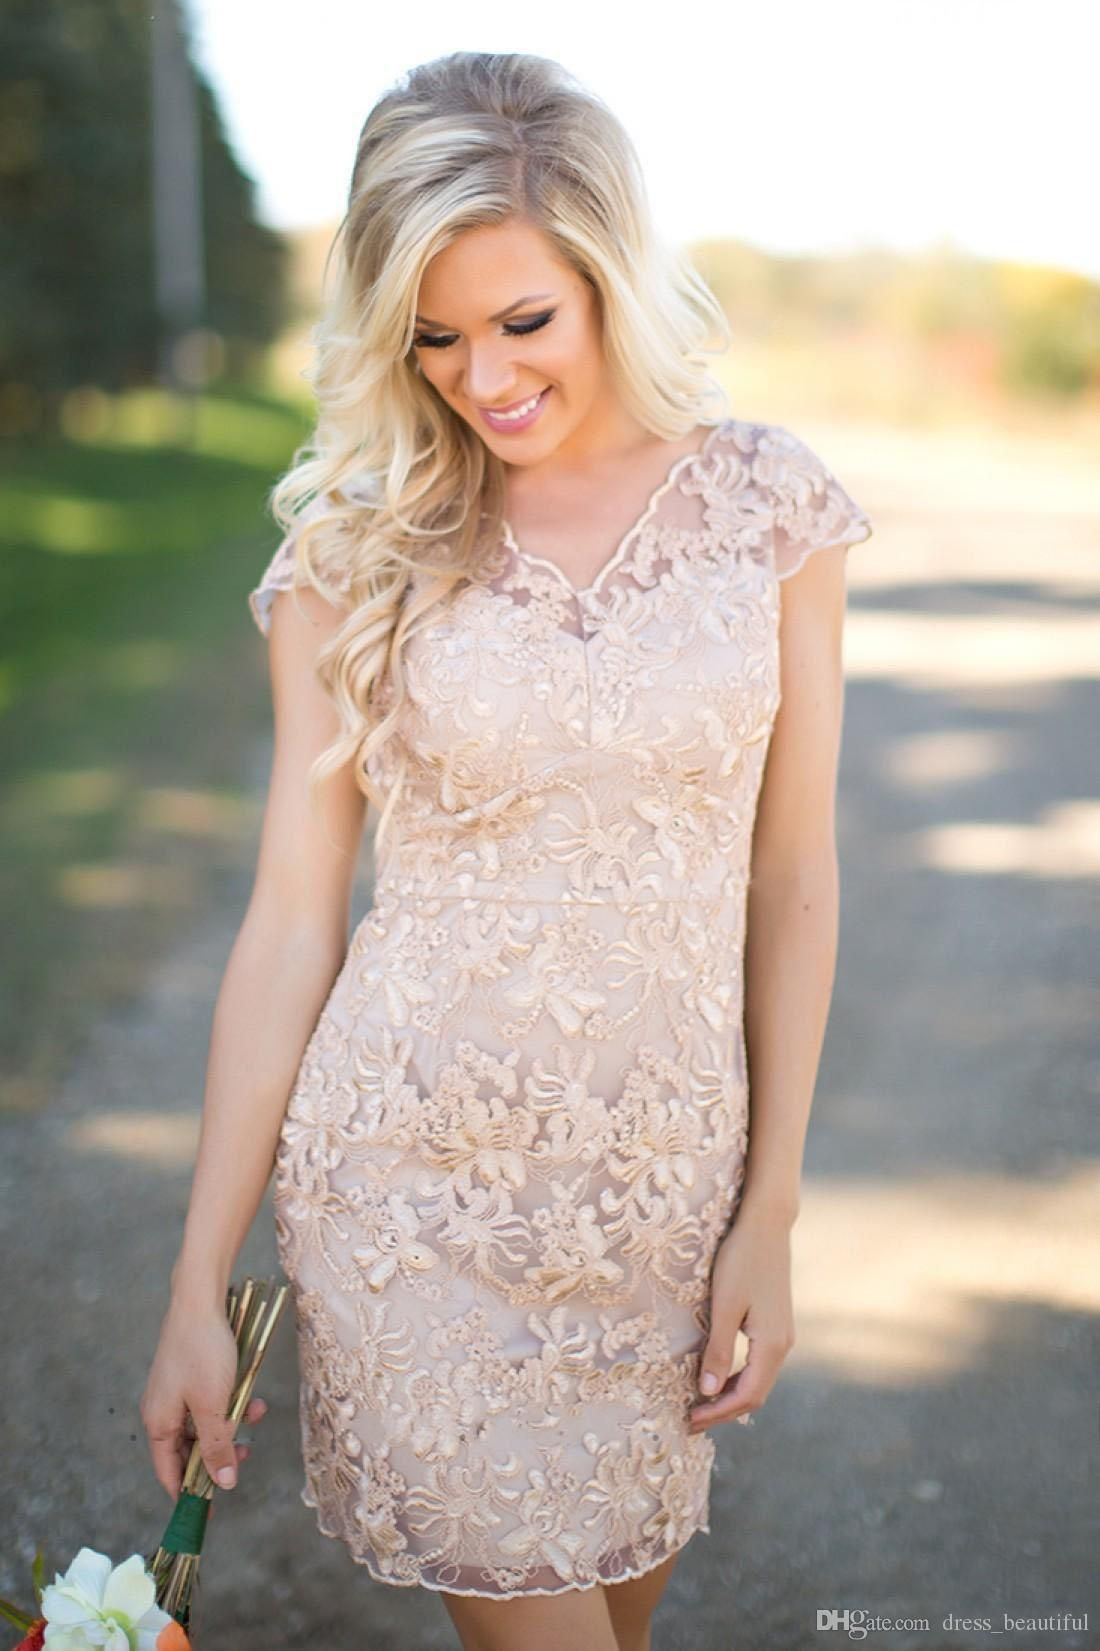 2017 Cheap Country Bridesmaid Dresses V Neck Full Lace Short Sleeves Champagne Sheath Wedding Guest Wear Party Dresses Maid Of Honor Gowns From Dress Beautiful Country Bridesmaid Dresses Short Wedding Dress Beach [ 1651 x 1100 Pixel ]